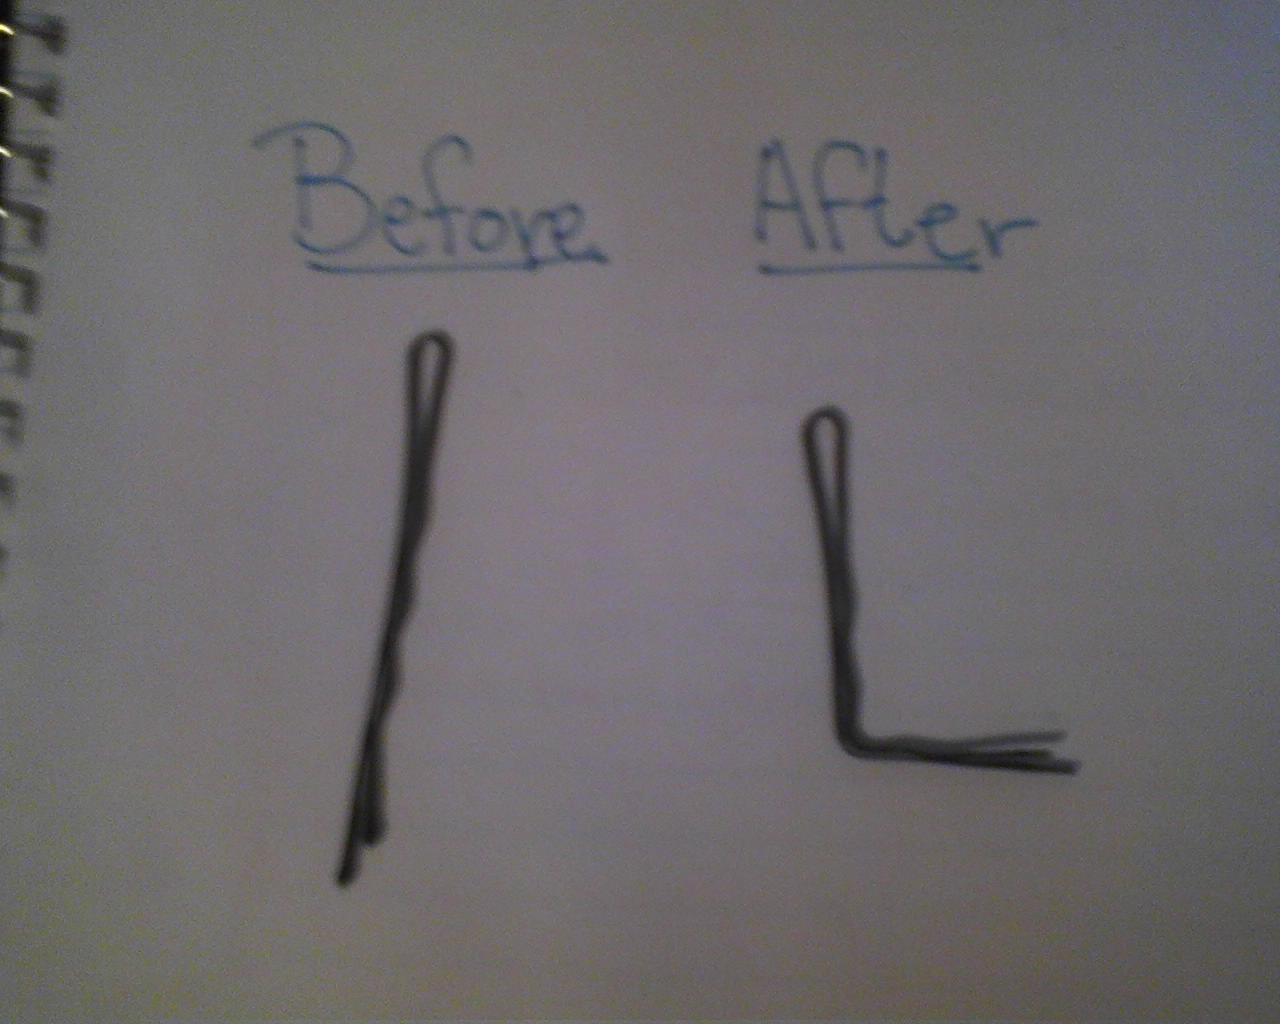 The before and after picture for creating a lock picking tool